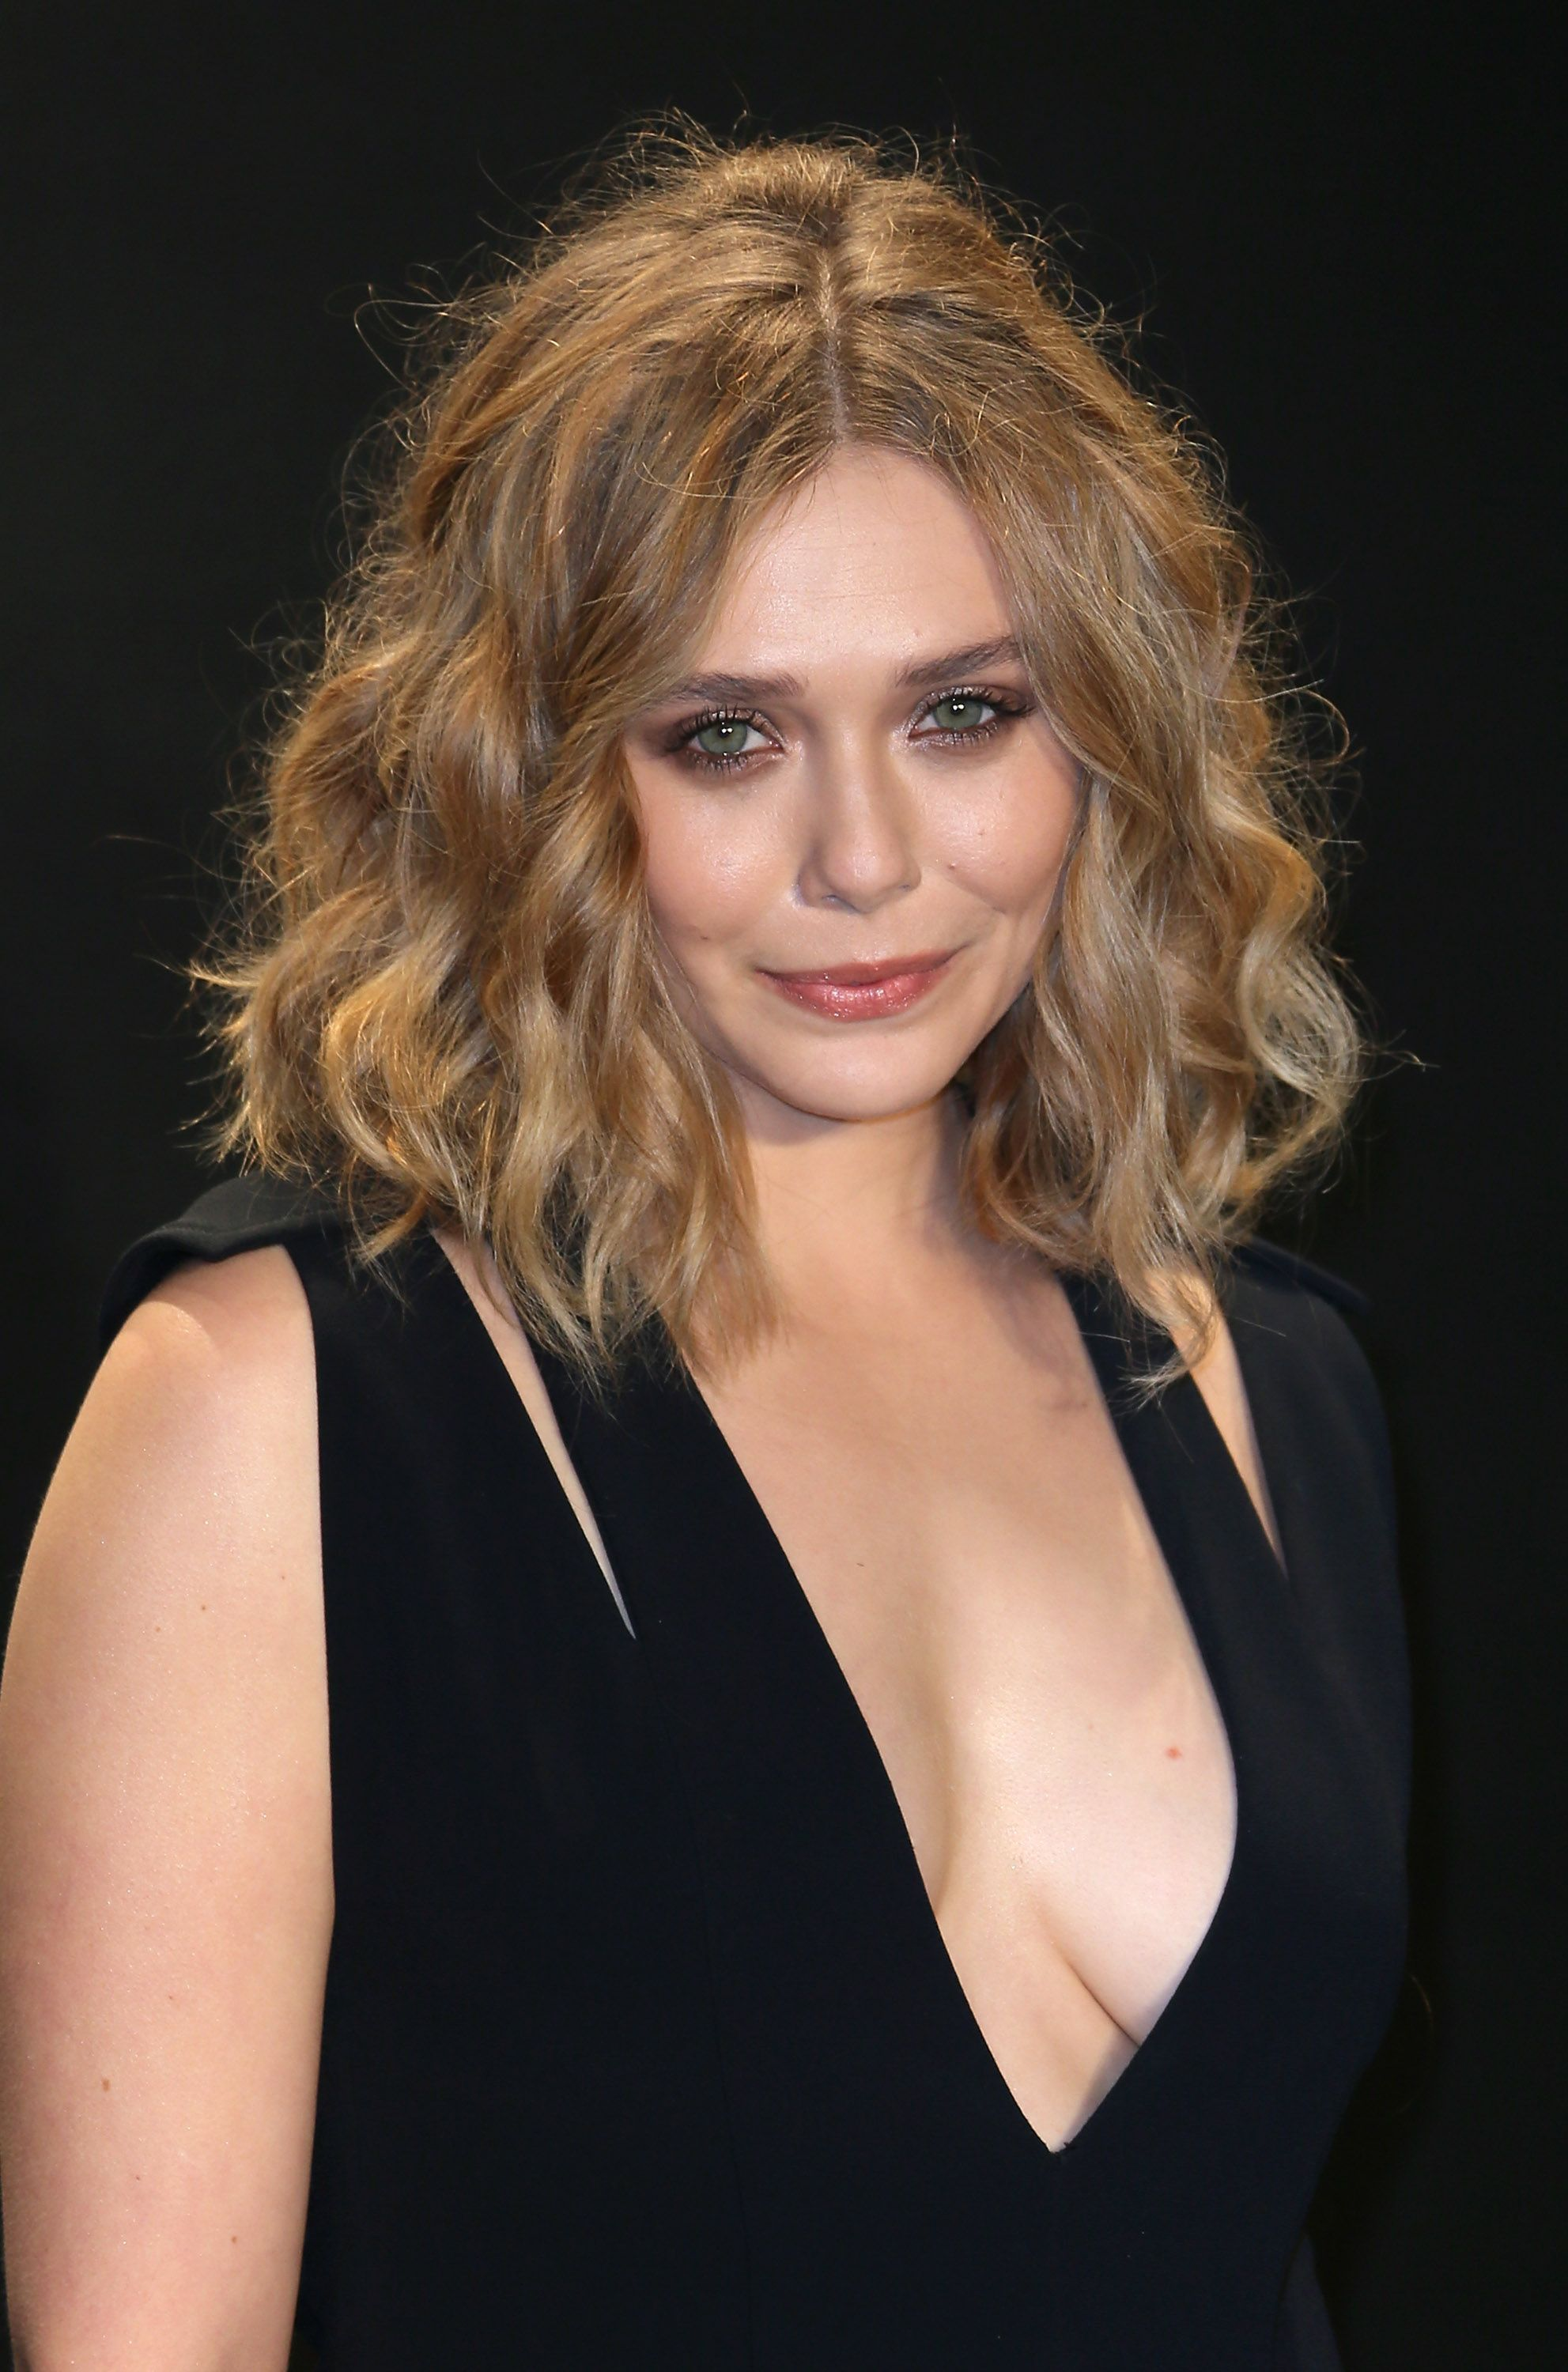 Cleavage Mary Kate Olsen nude (37 photo), Sexy, Is a cute, Boobs, underwear 2019